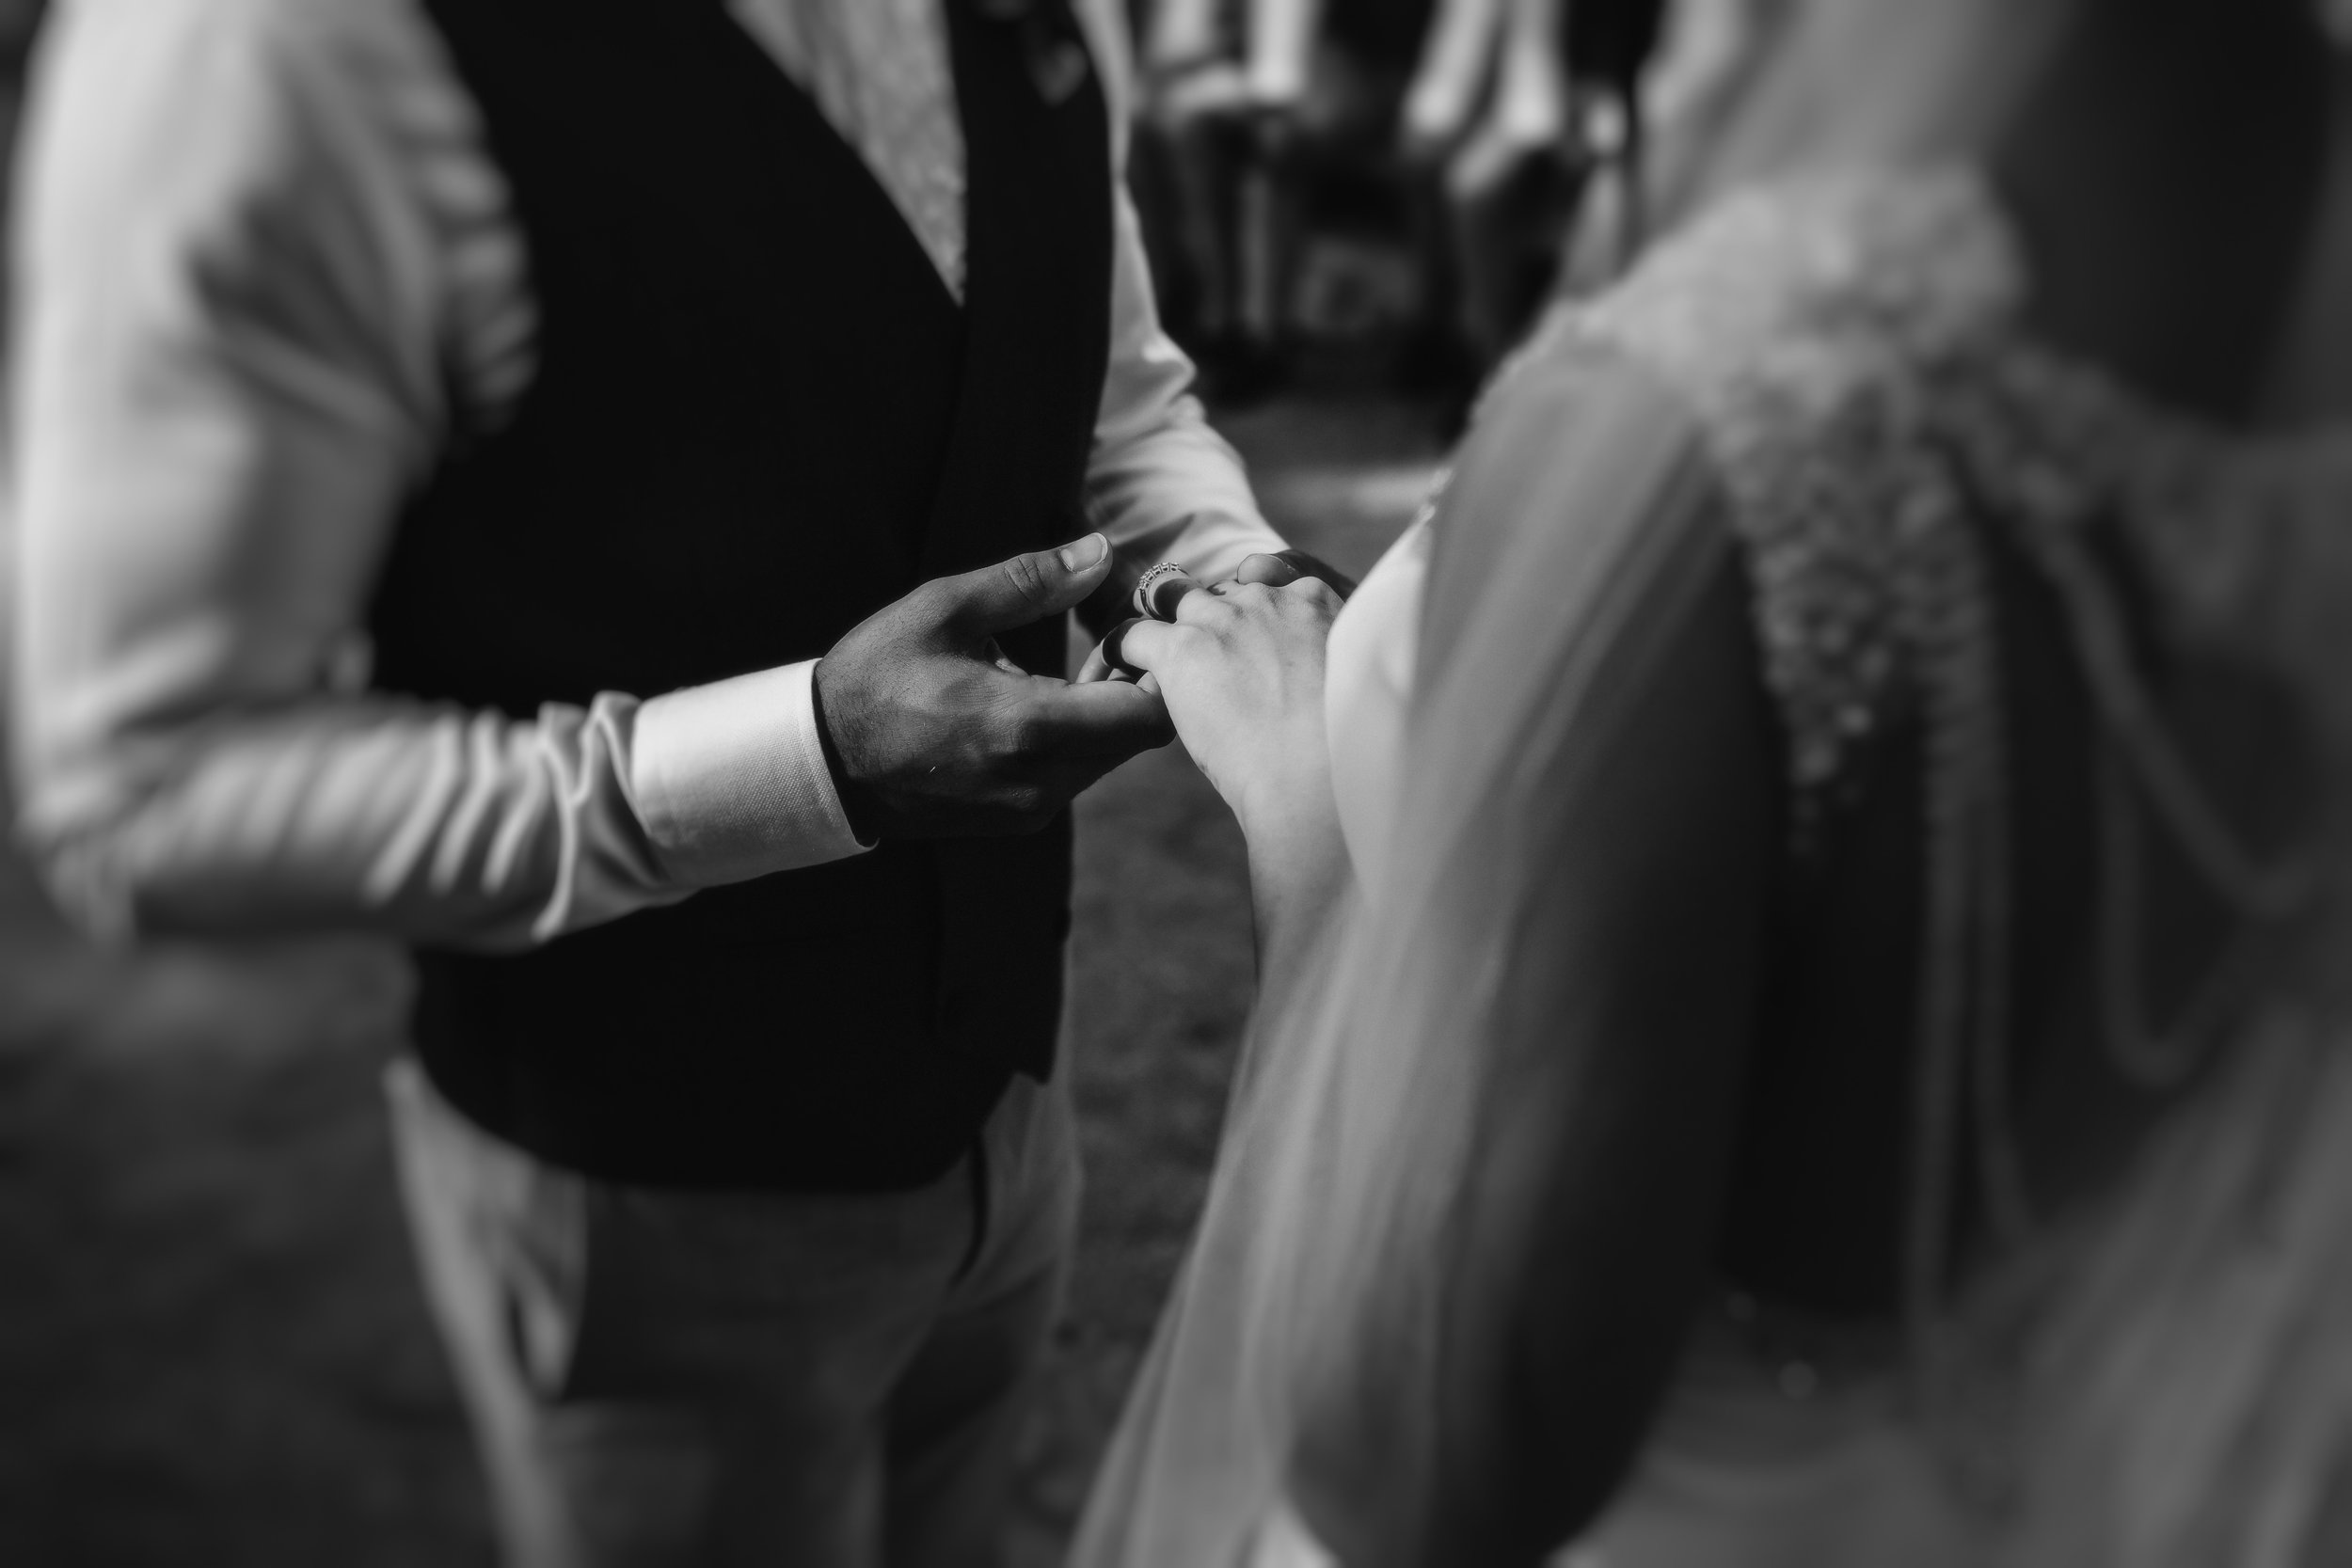 A bride and groom holding hands on their wedding day at Joansaidi by Calblay in SItges Barcelona by Jo Kemp Photography